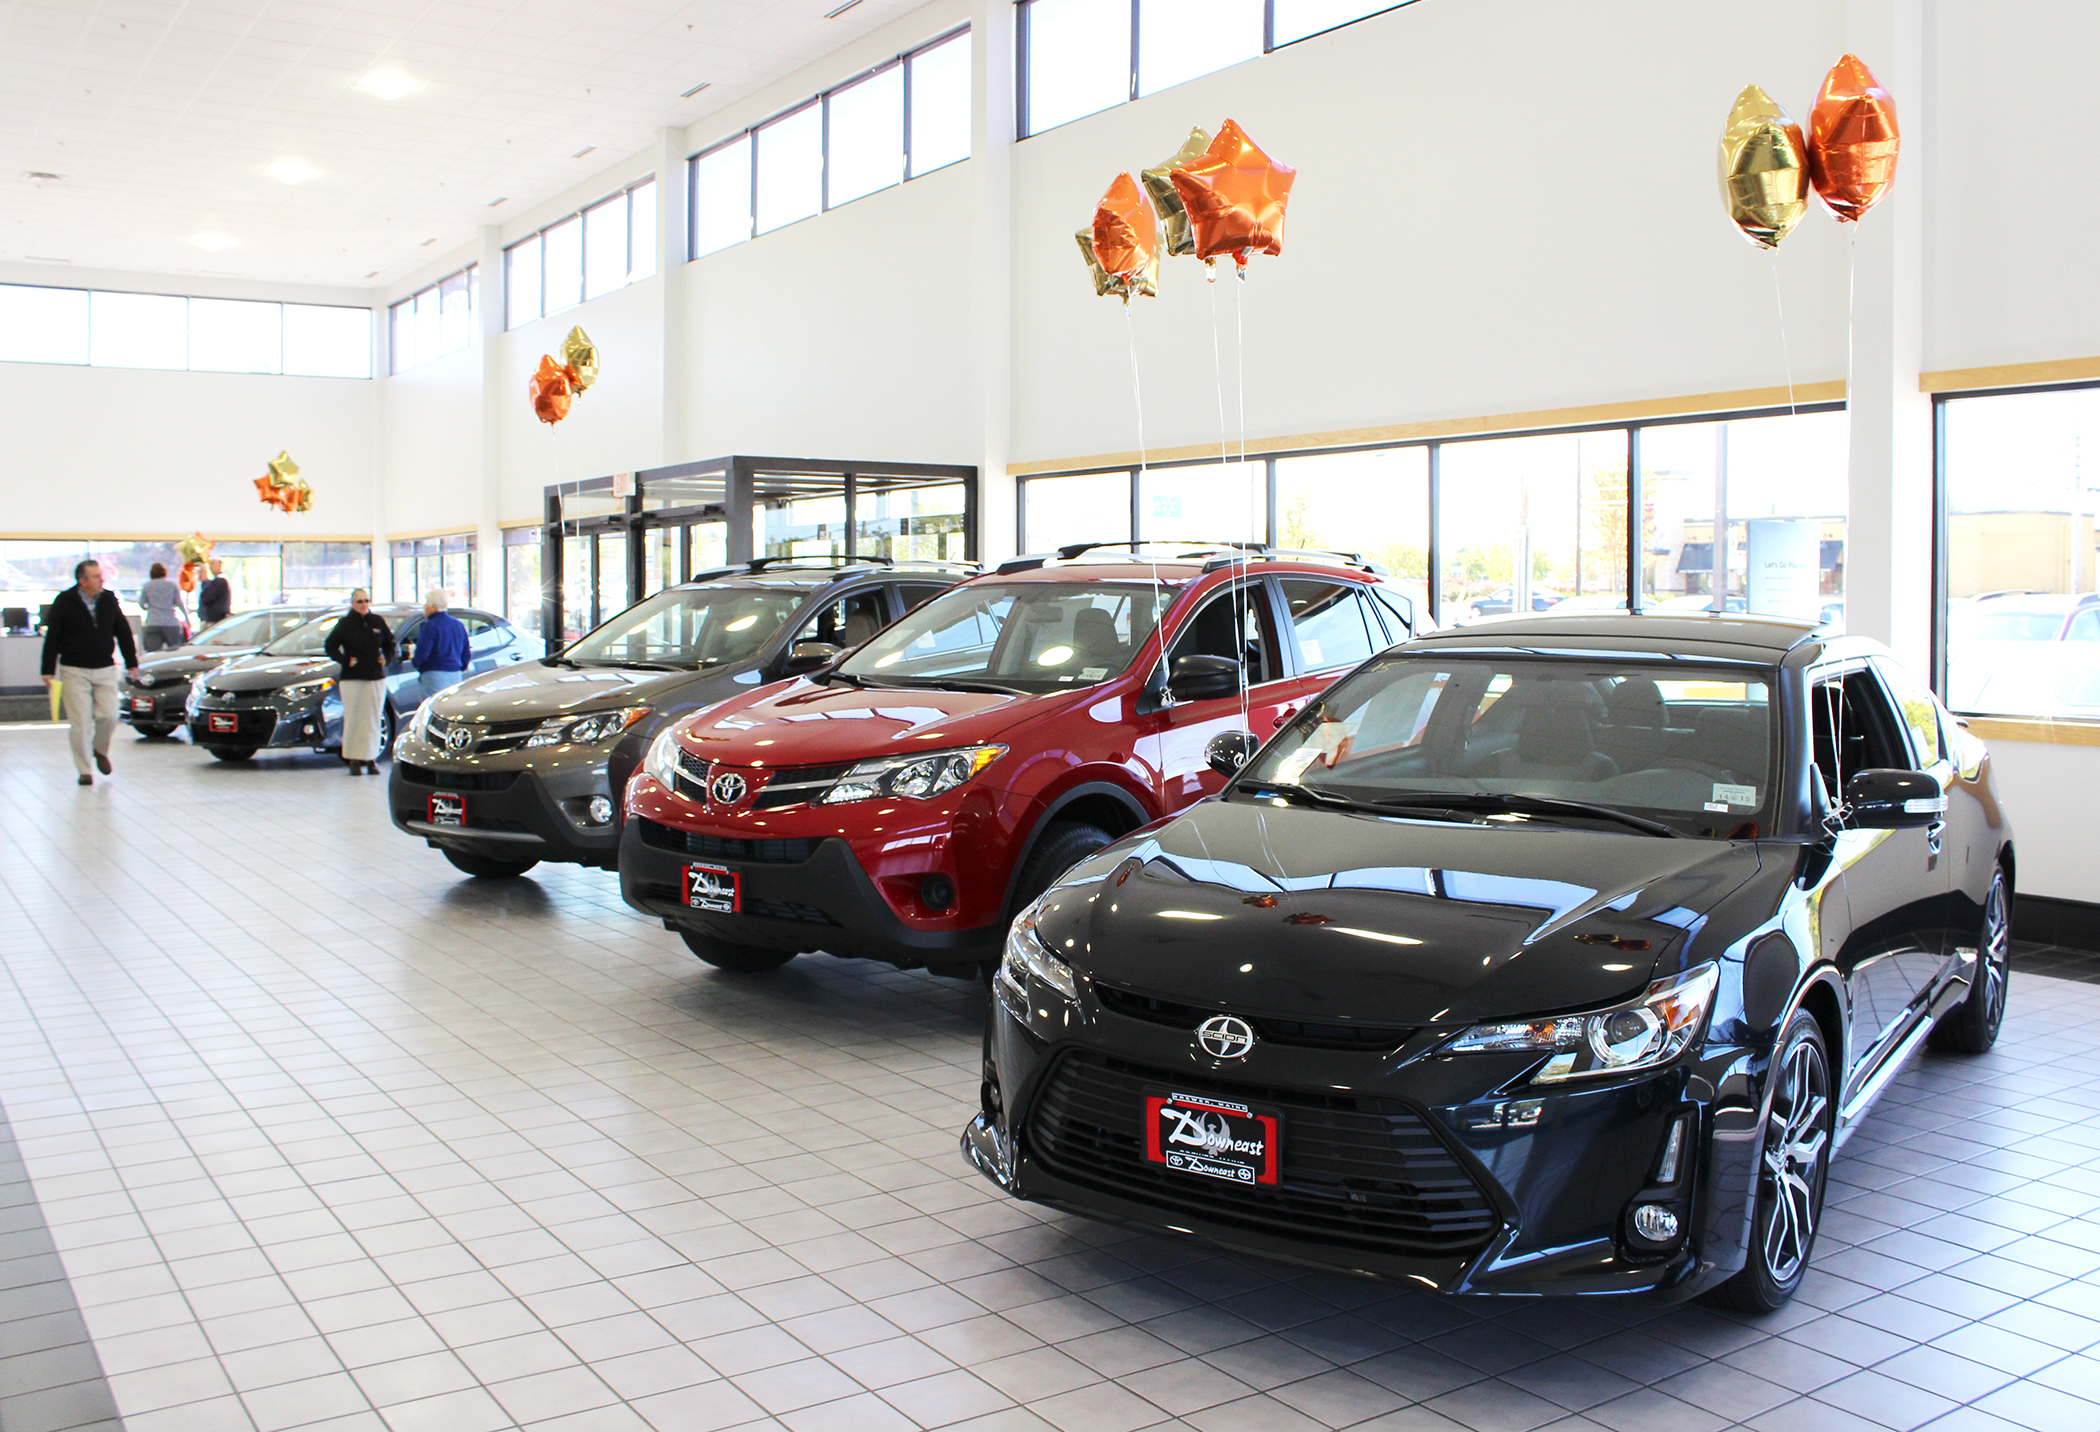 It Is Exciting To Think About Purchasing Or Leasing A New Or Pre Owned  Vehicle, And We At Downeast Toyota Scion Are Looking Forward To Being Your  Partner In ...